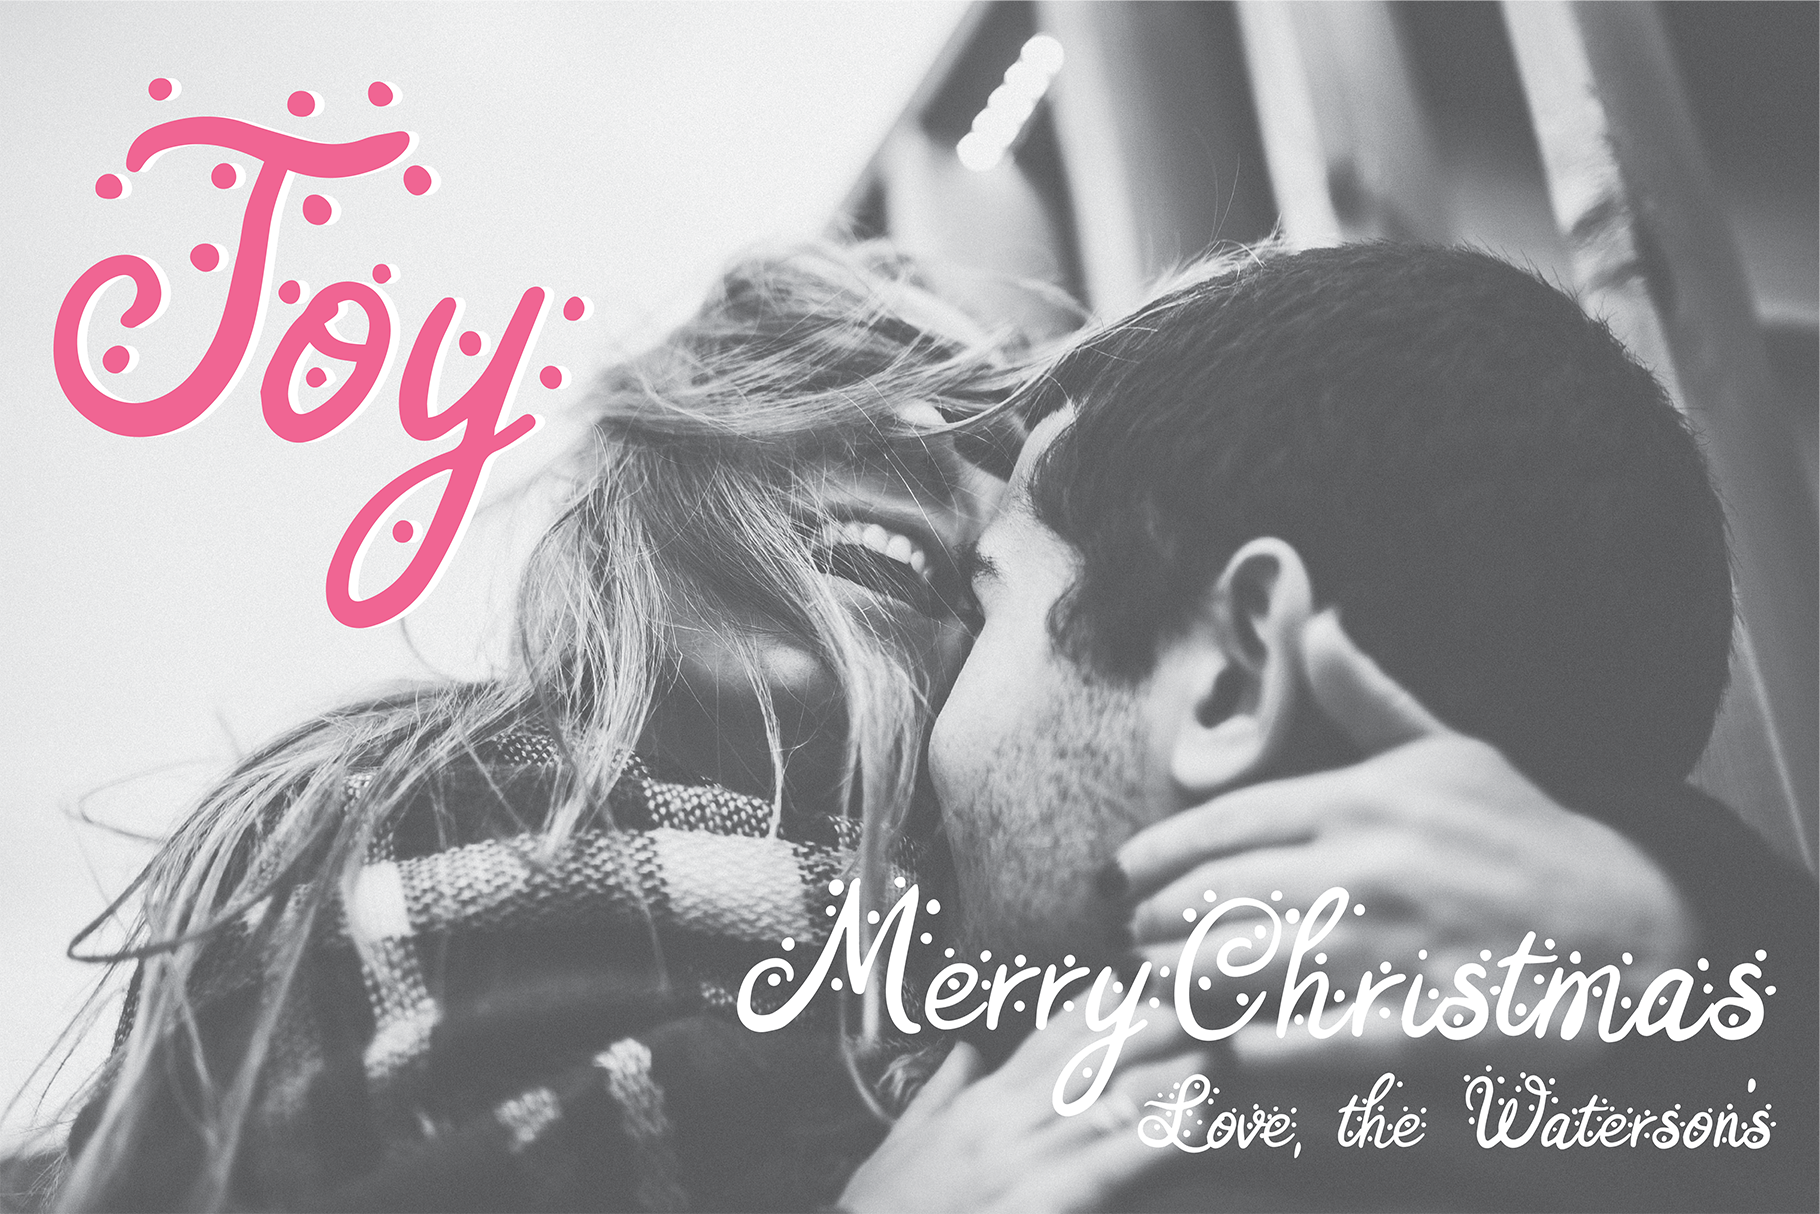 AFTERGLOW a Christmas Snow Holiday Font example image 2